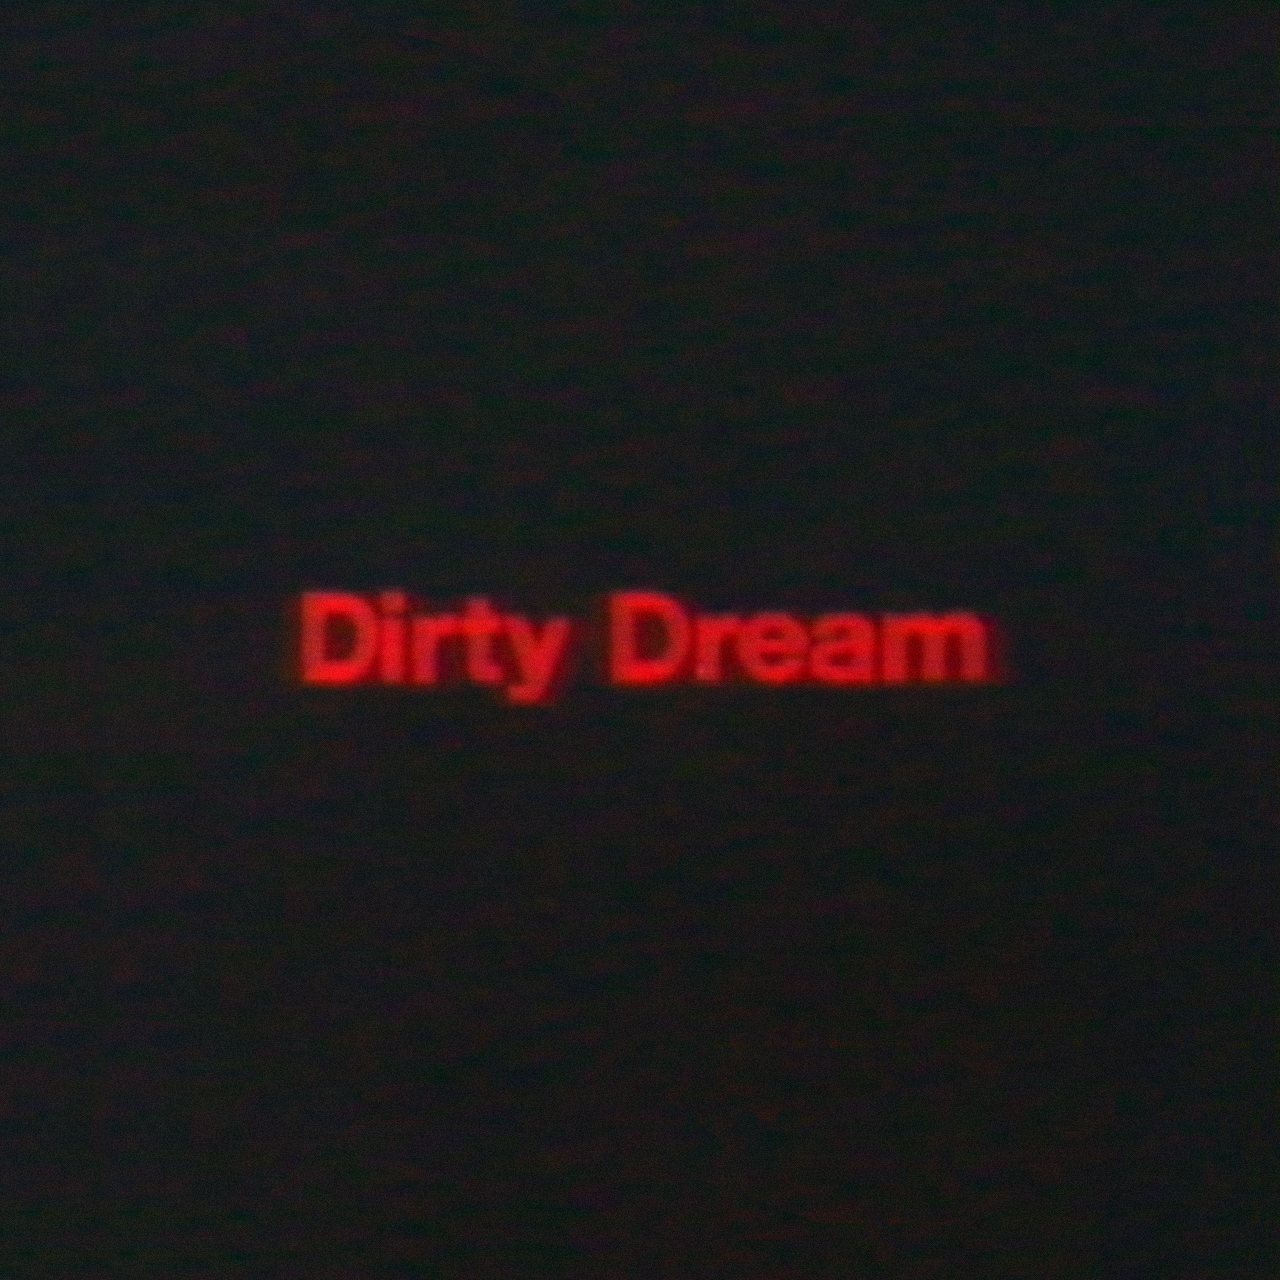 Dirty Dream